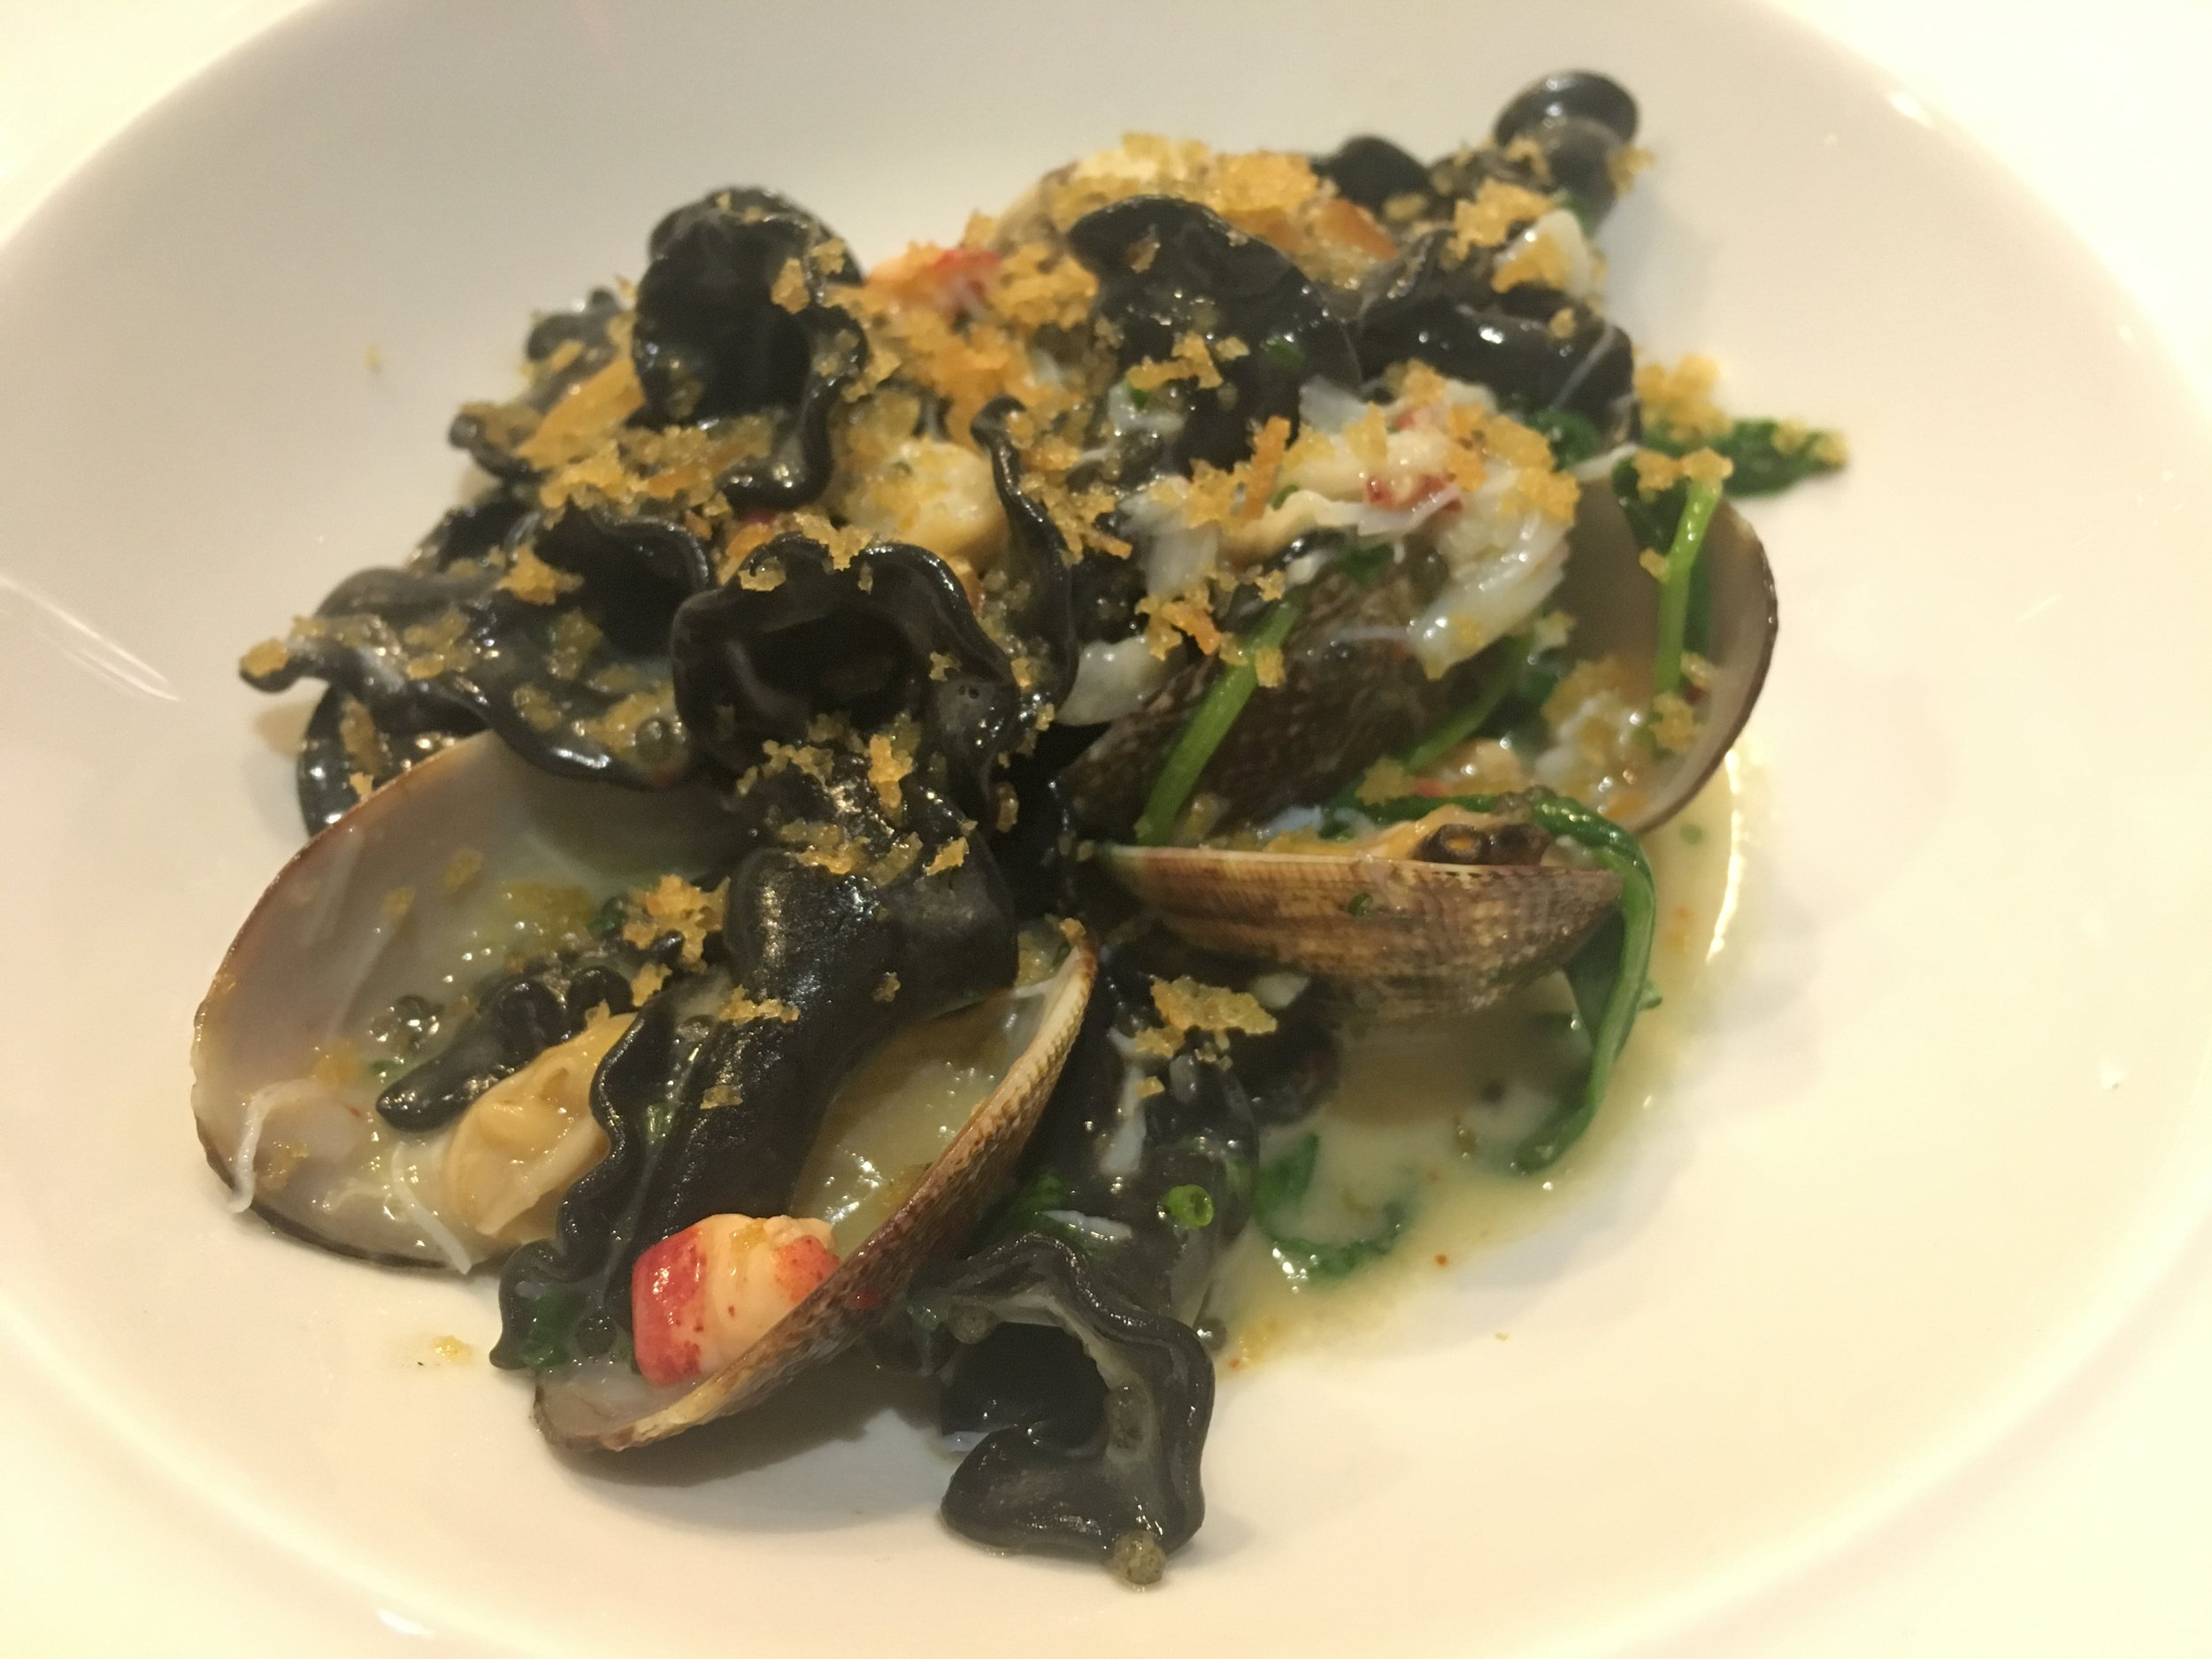 Squid ink carmenelli replete with peekytoe crab, lobster, caviar, and razor and manila clams